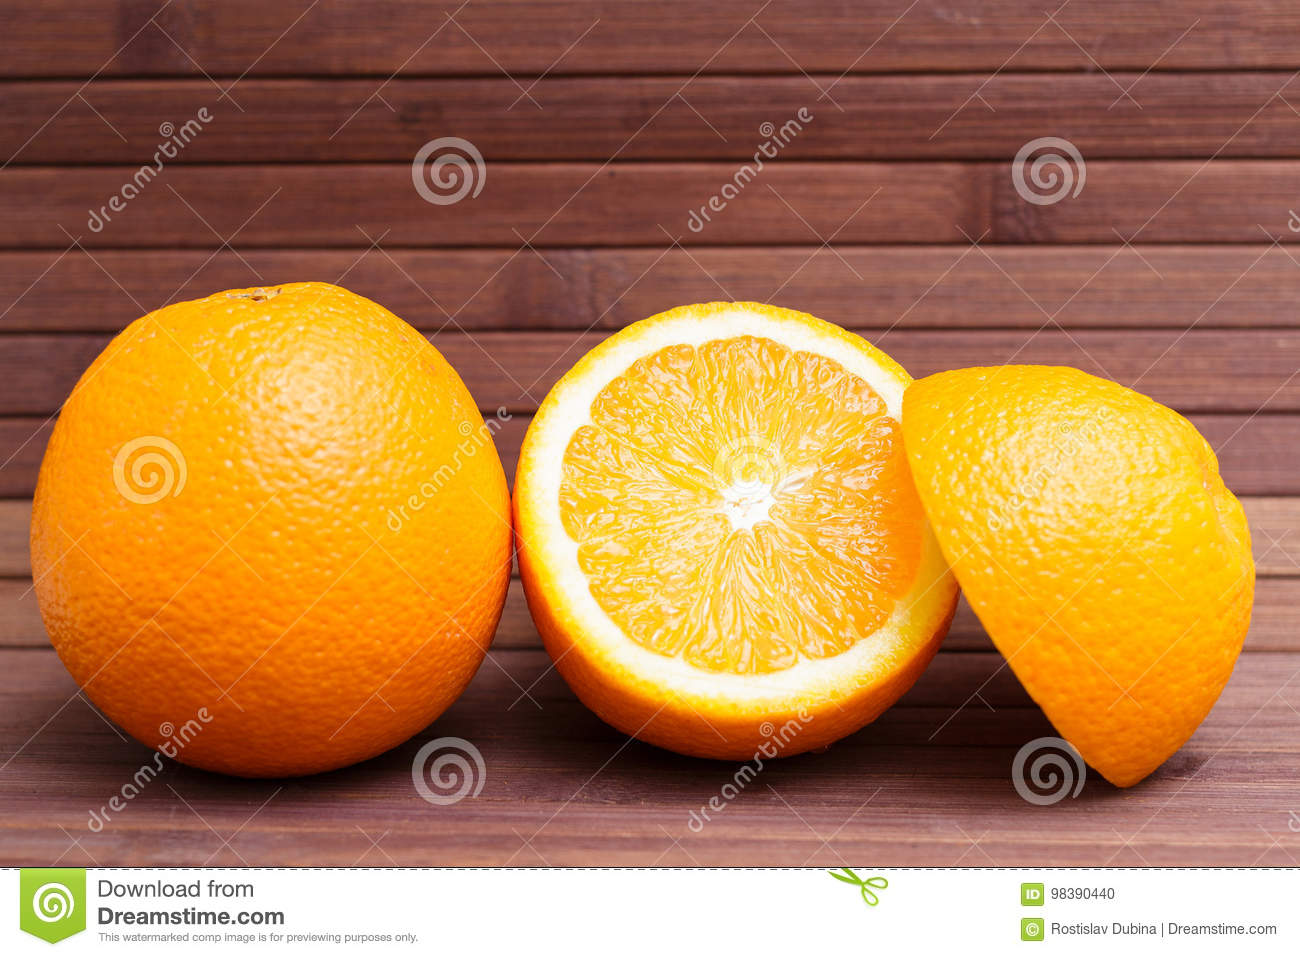 Arrangement of orange isolated on wooden background. Healthy food. A mix of fresh fruit. Group of citrus fruits. Vegetarian, raw.